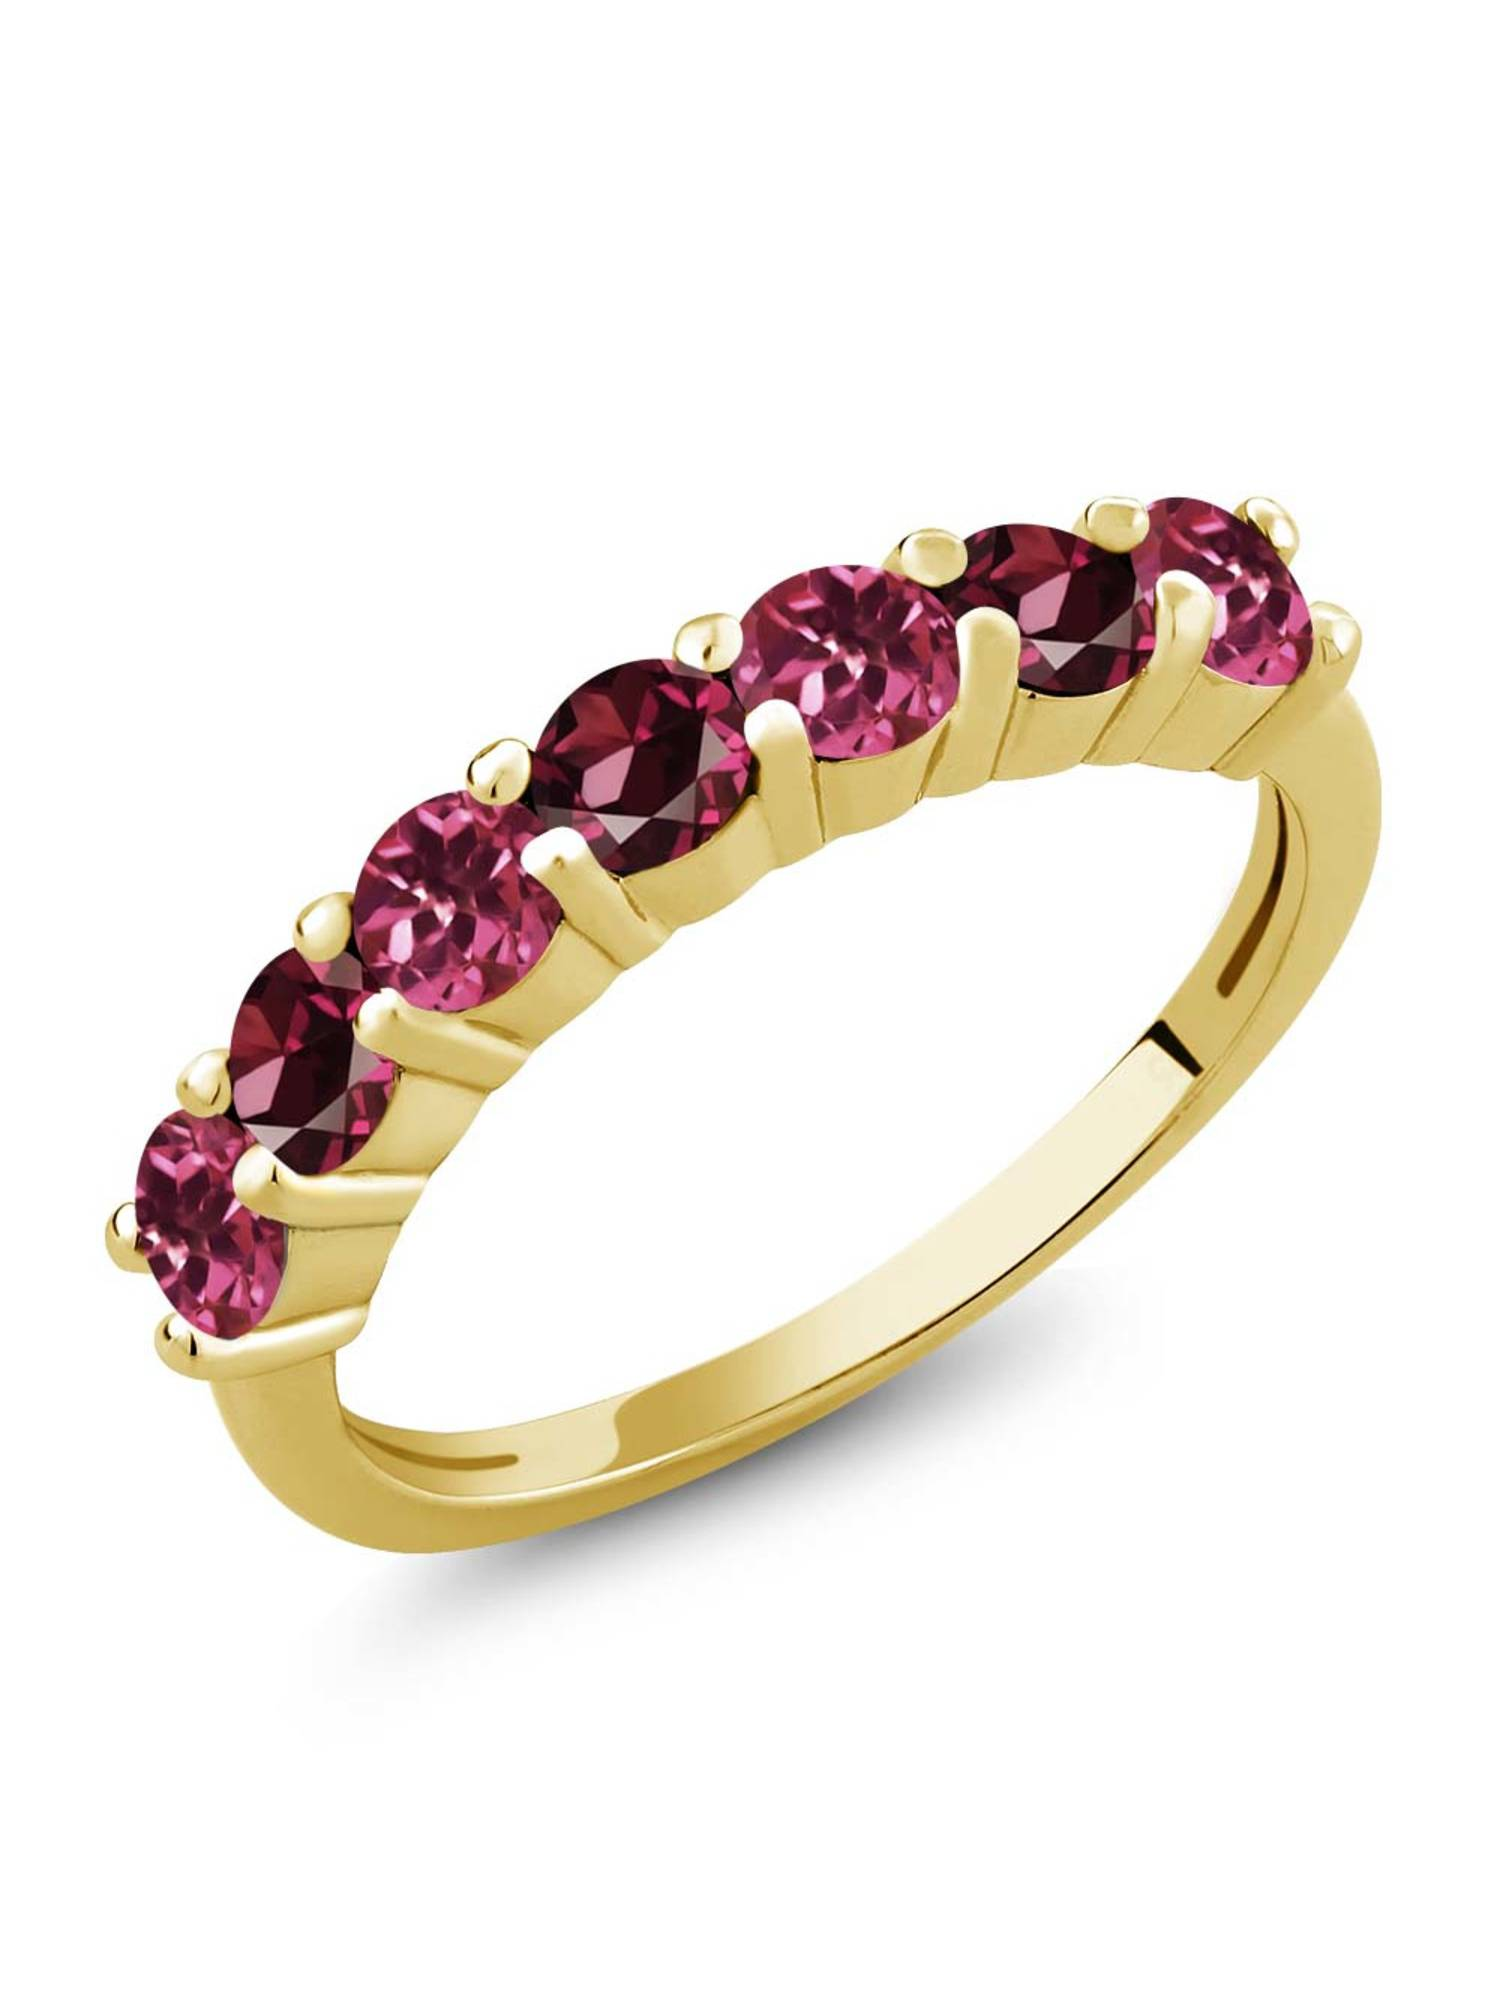 1.26 Ct Pink Tourmaline Red Rhodolite Garnet 18K Yellow Gold Plated Silver Ring by